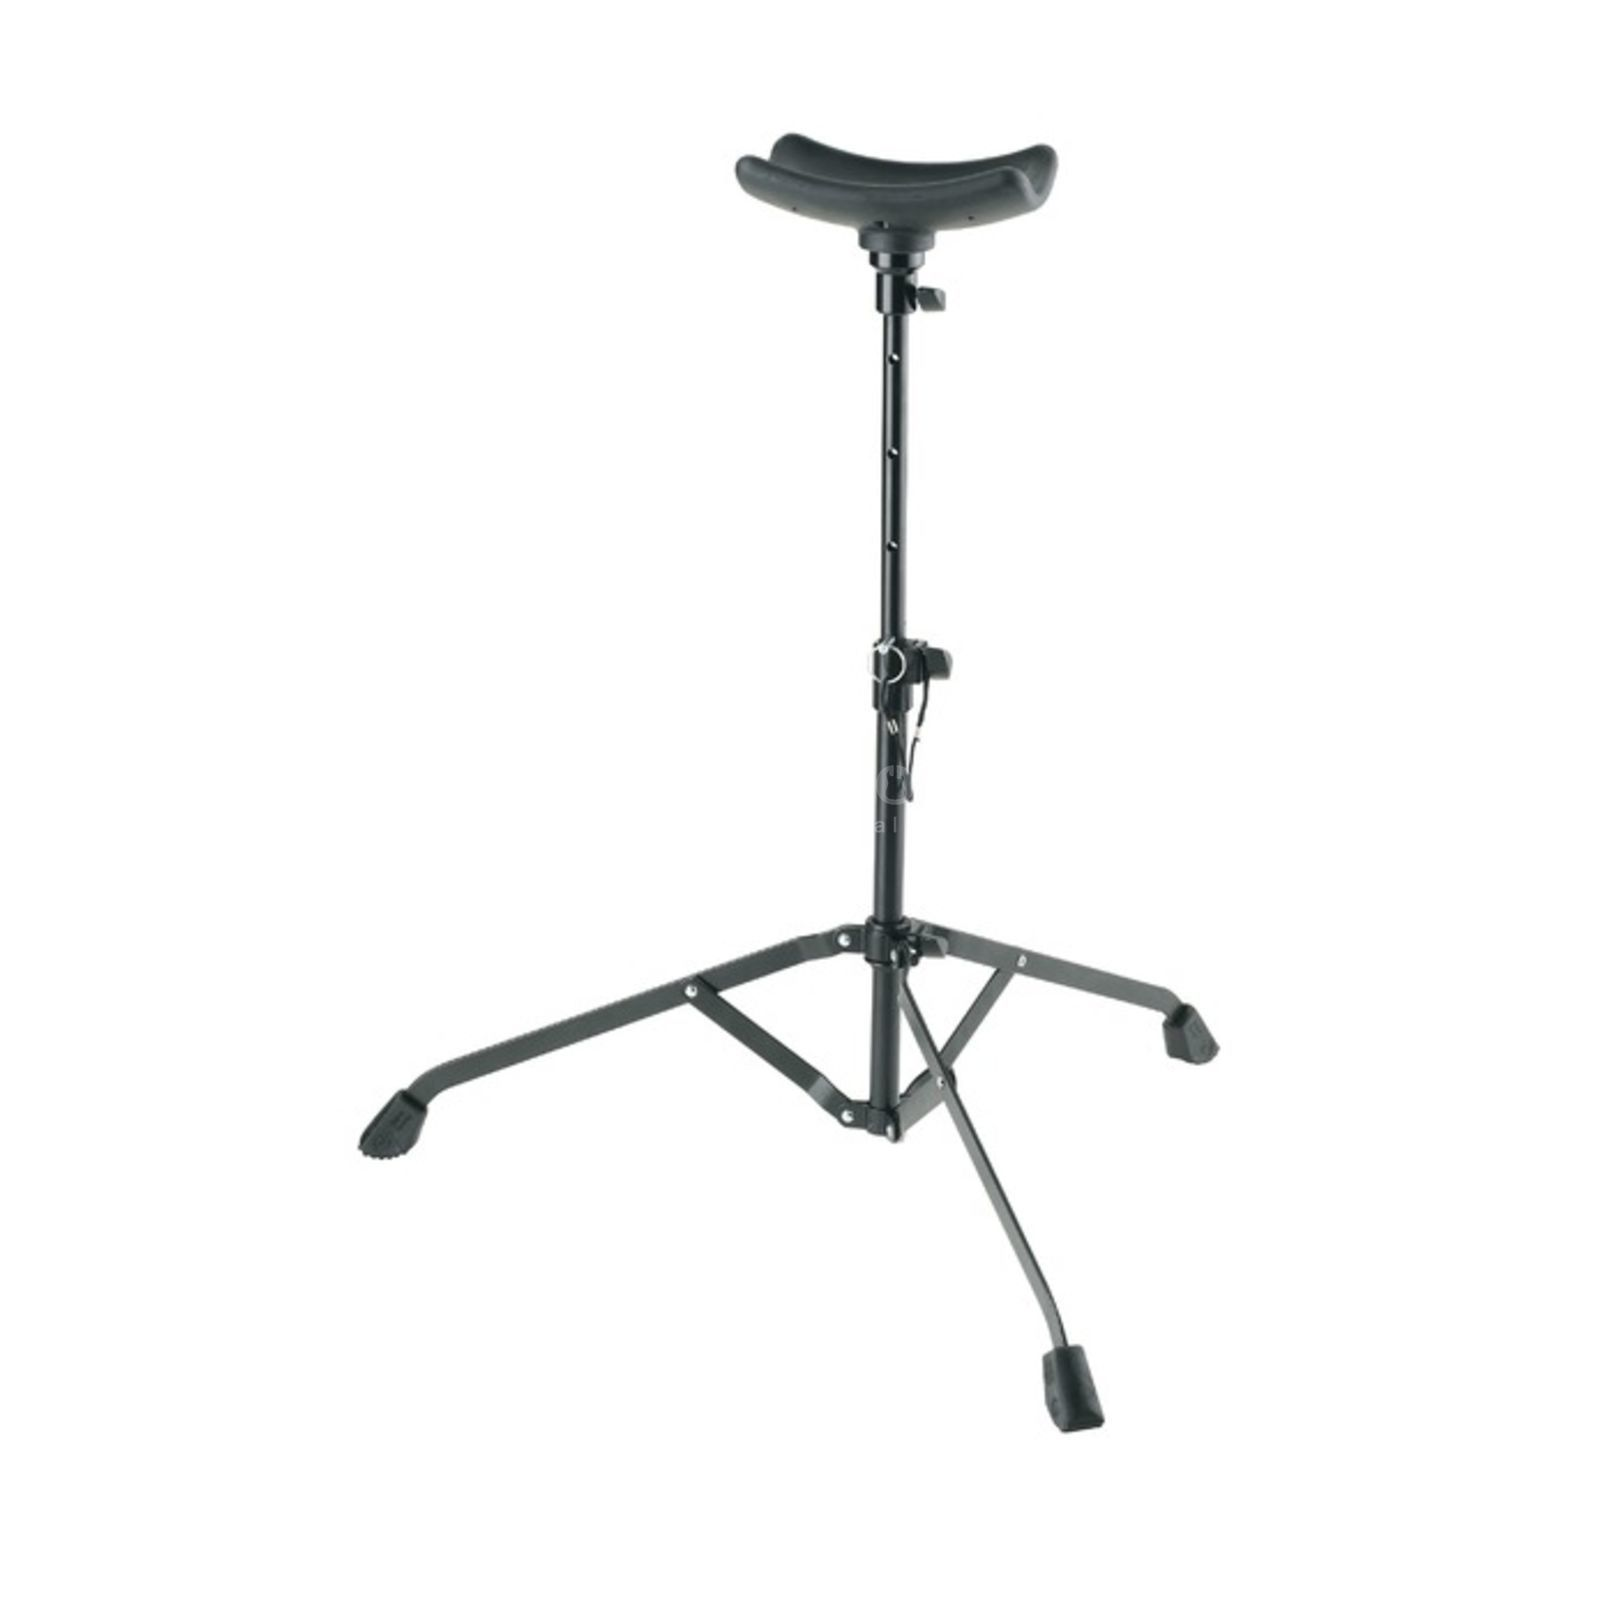 König & Meyer 14950 Tuba Playing Stand - Black Изображение товара